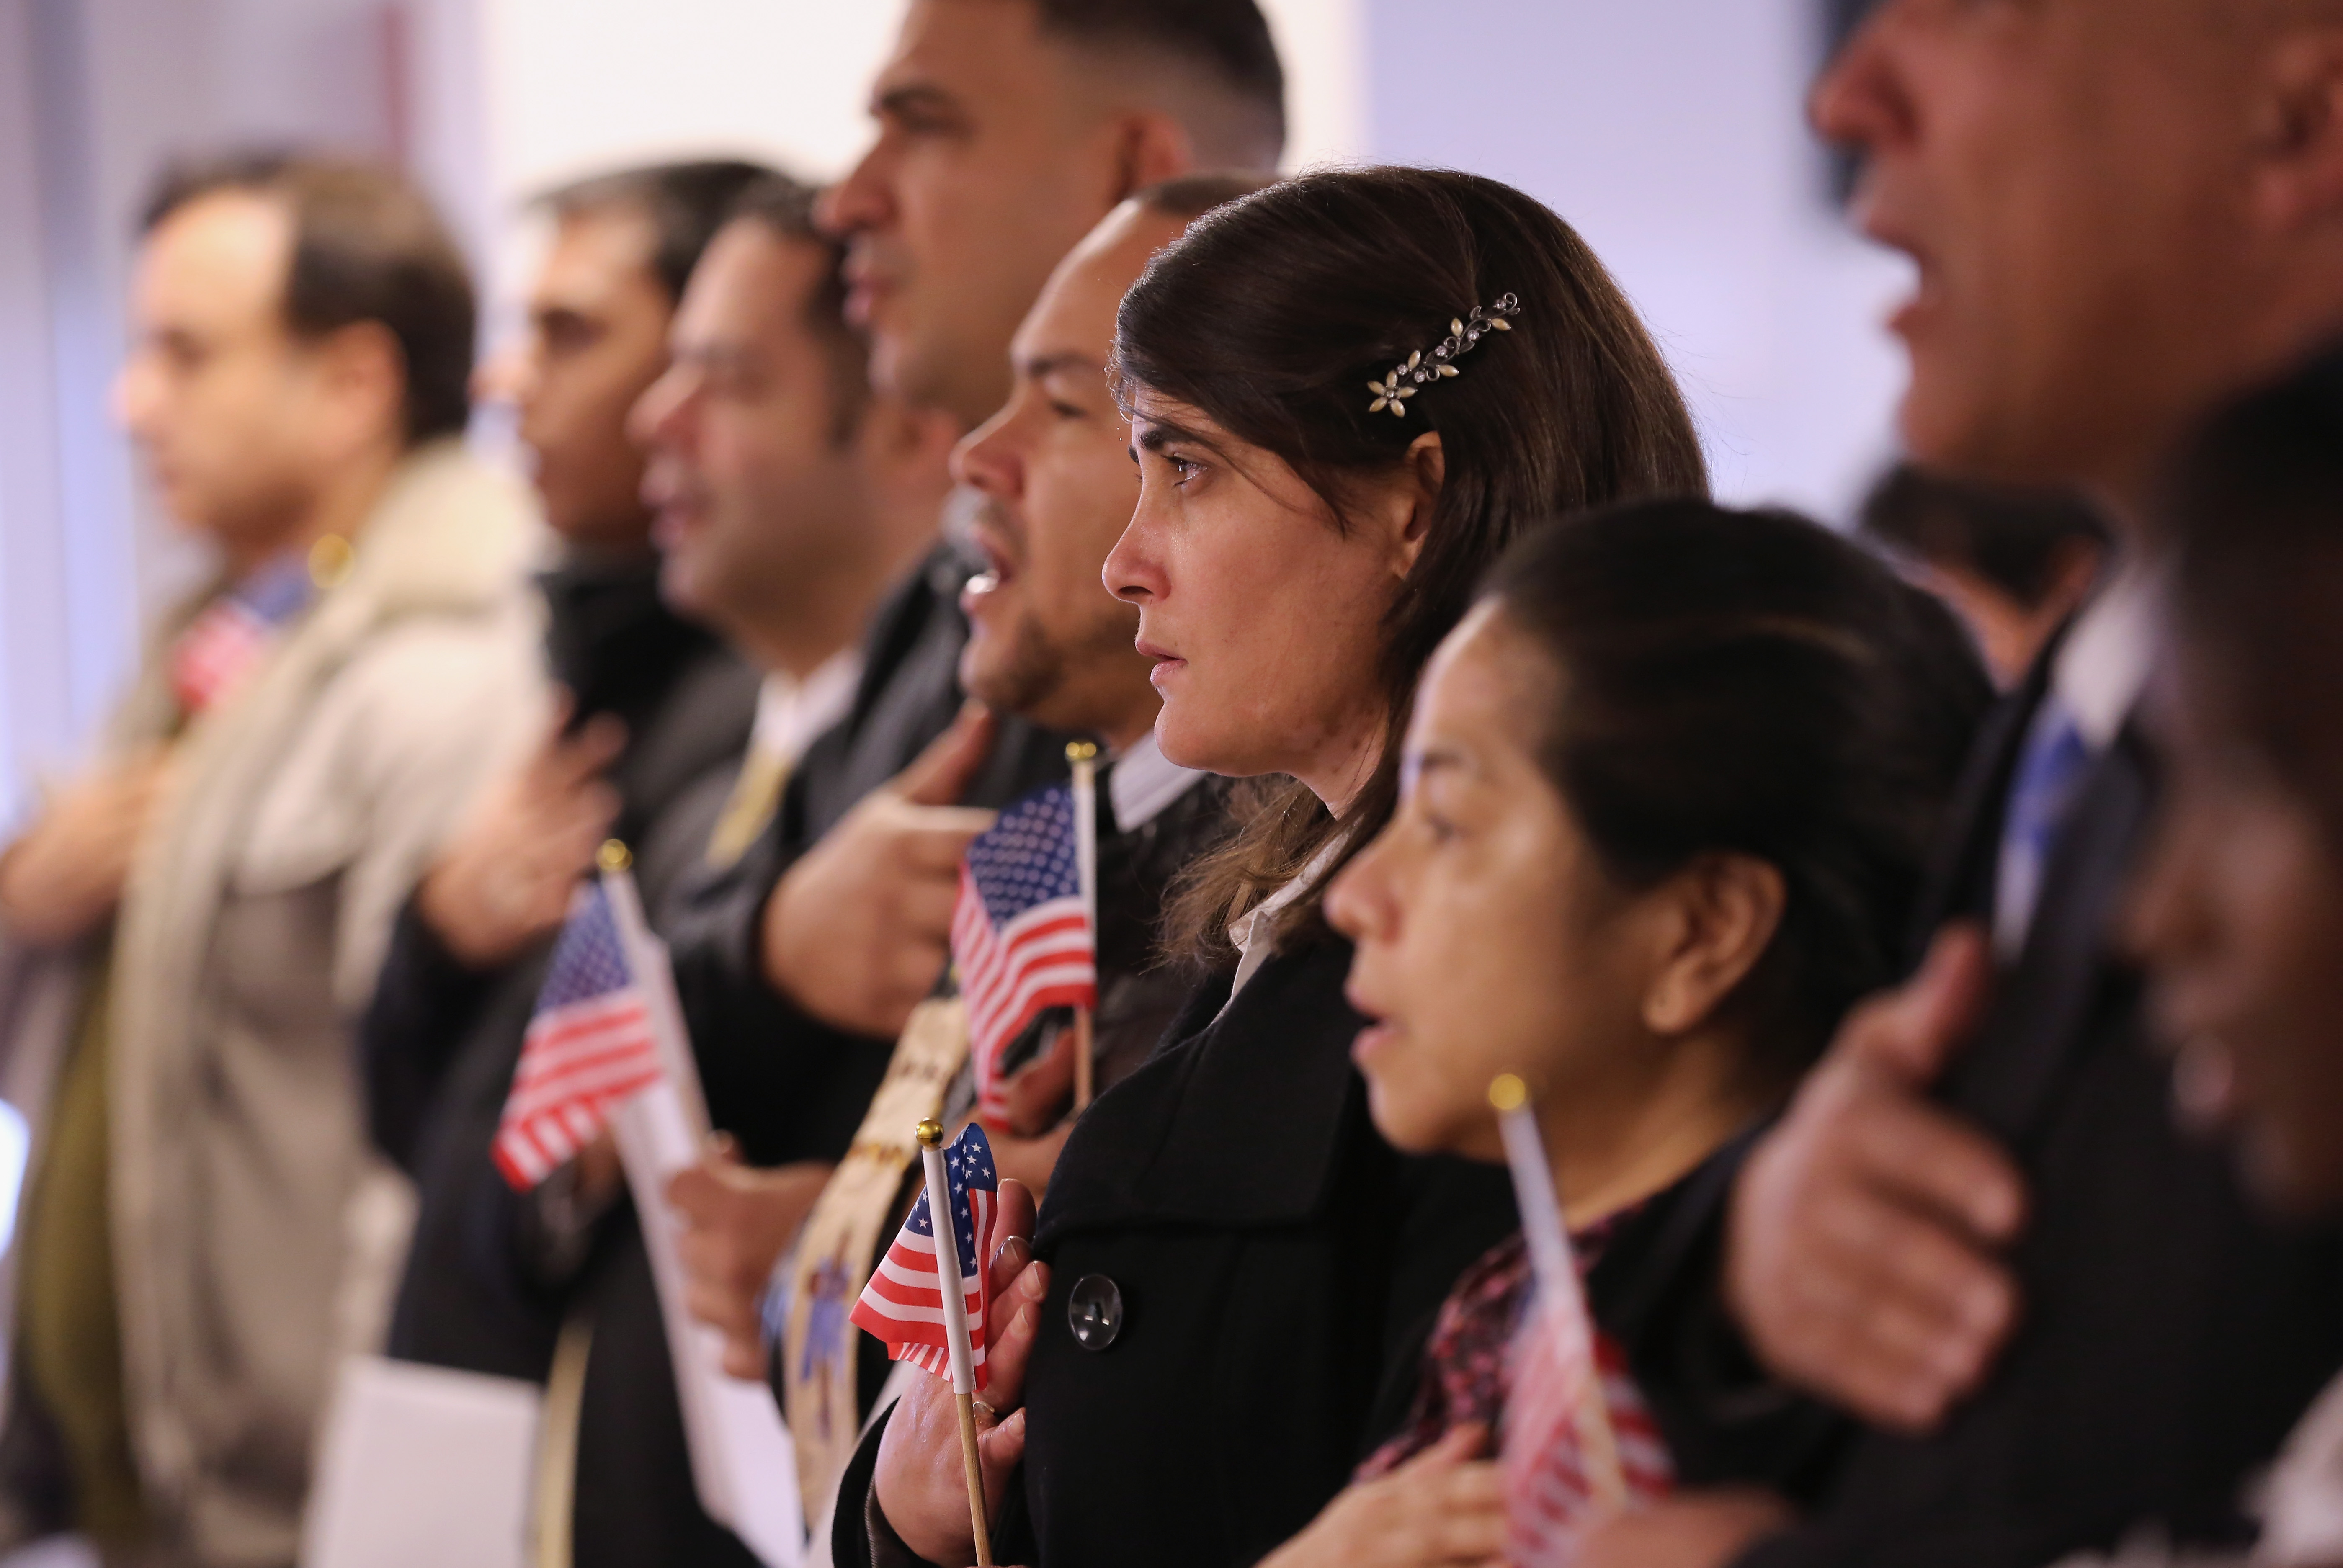 A group of brand-new American citizens taking the oath.